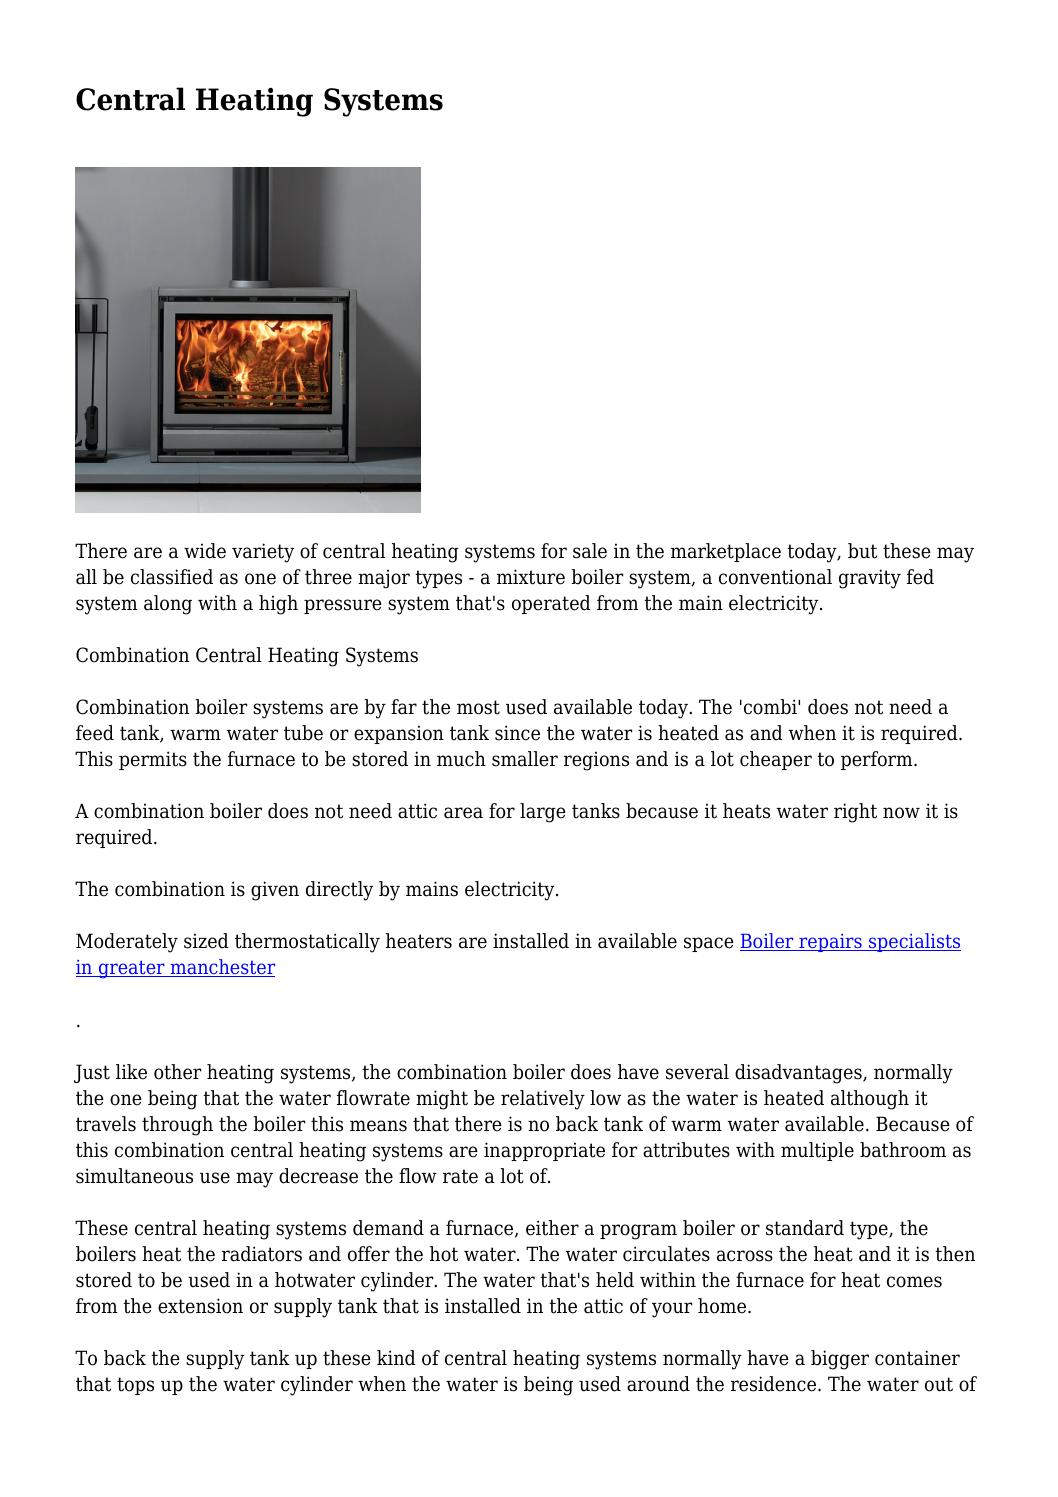 Central Heating Systems By